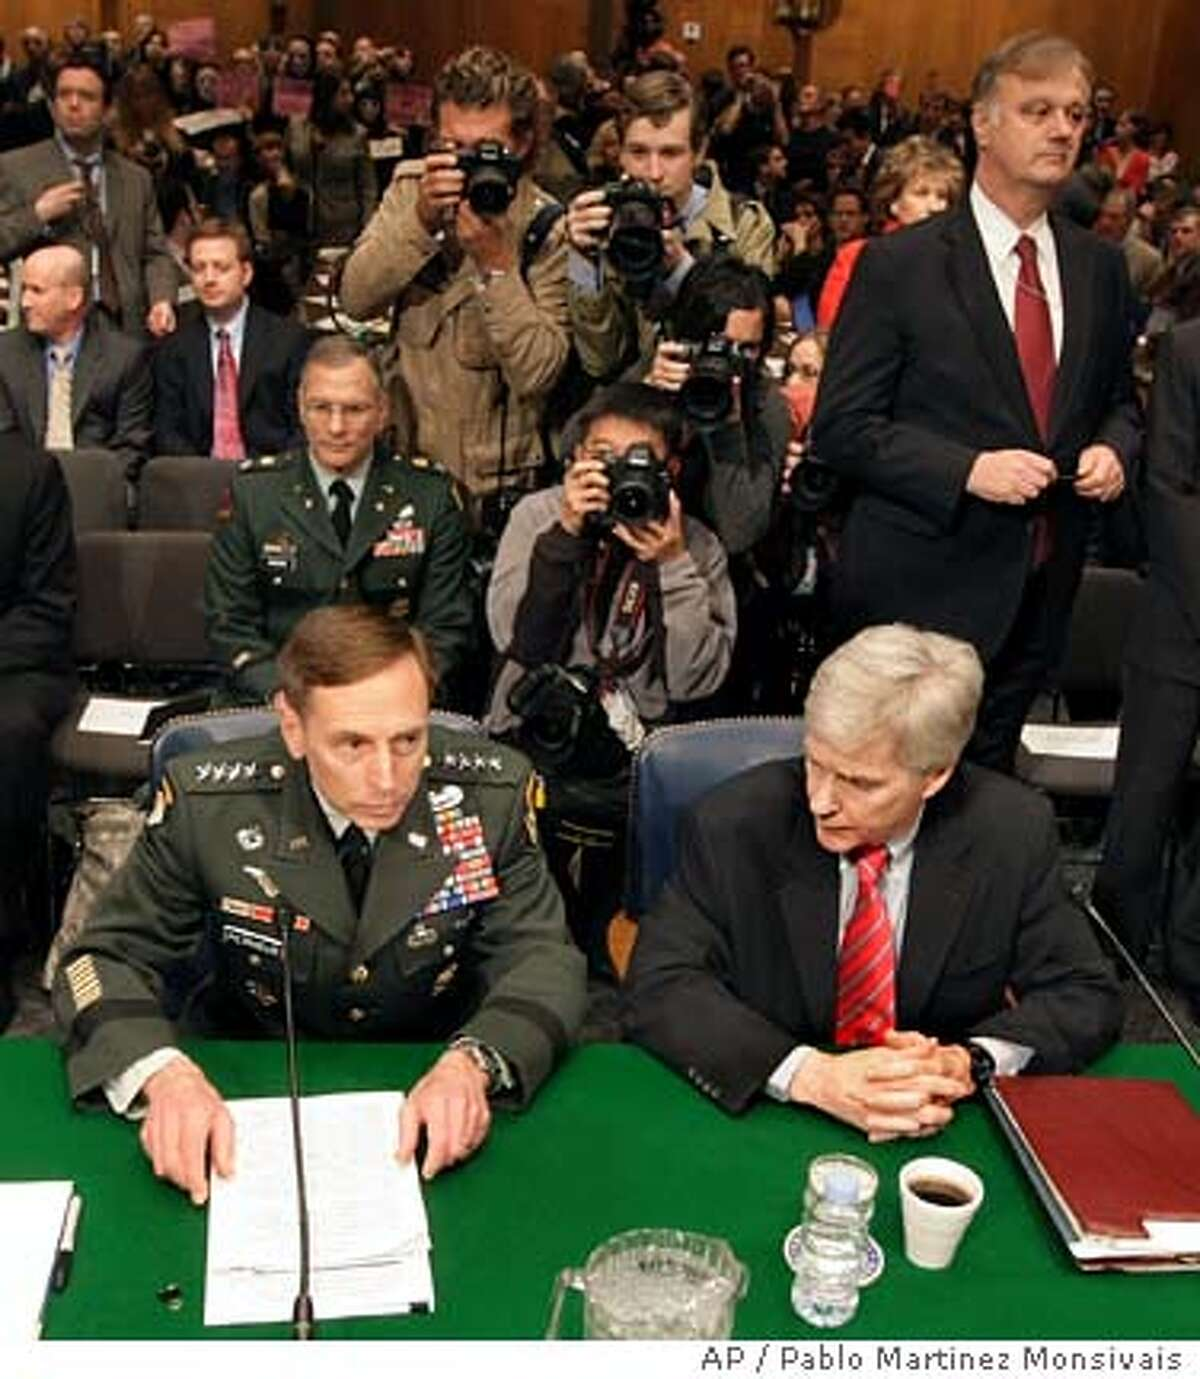 Gen. David Petraeus, left, and Amb. Ryan Crocker prepare to testify on Capitol Hill in Washington, Tuesday, April 8, 2008, before the Senate Armed Services Committee hearing on the status of the war in Iraq. (AP Photo/Pablo Martinez Monsivais)